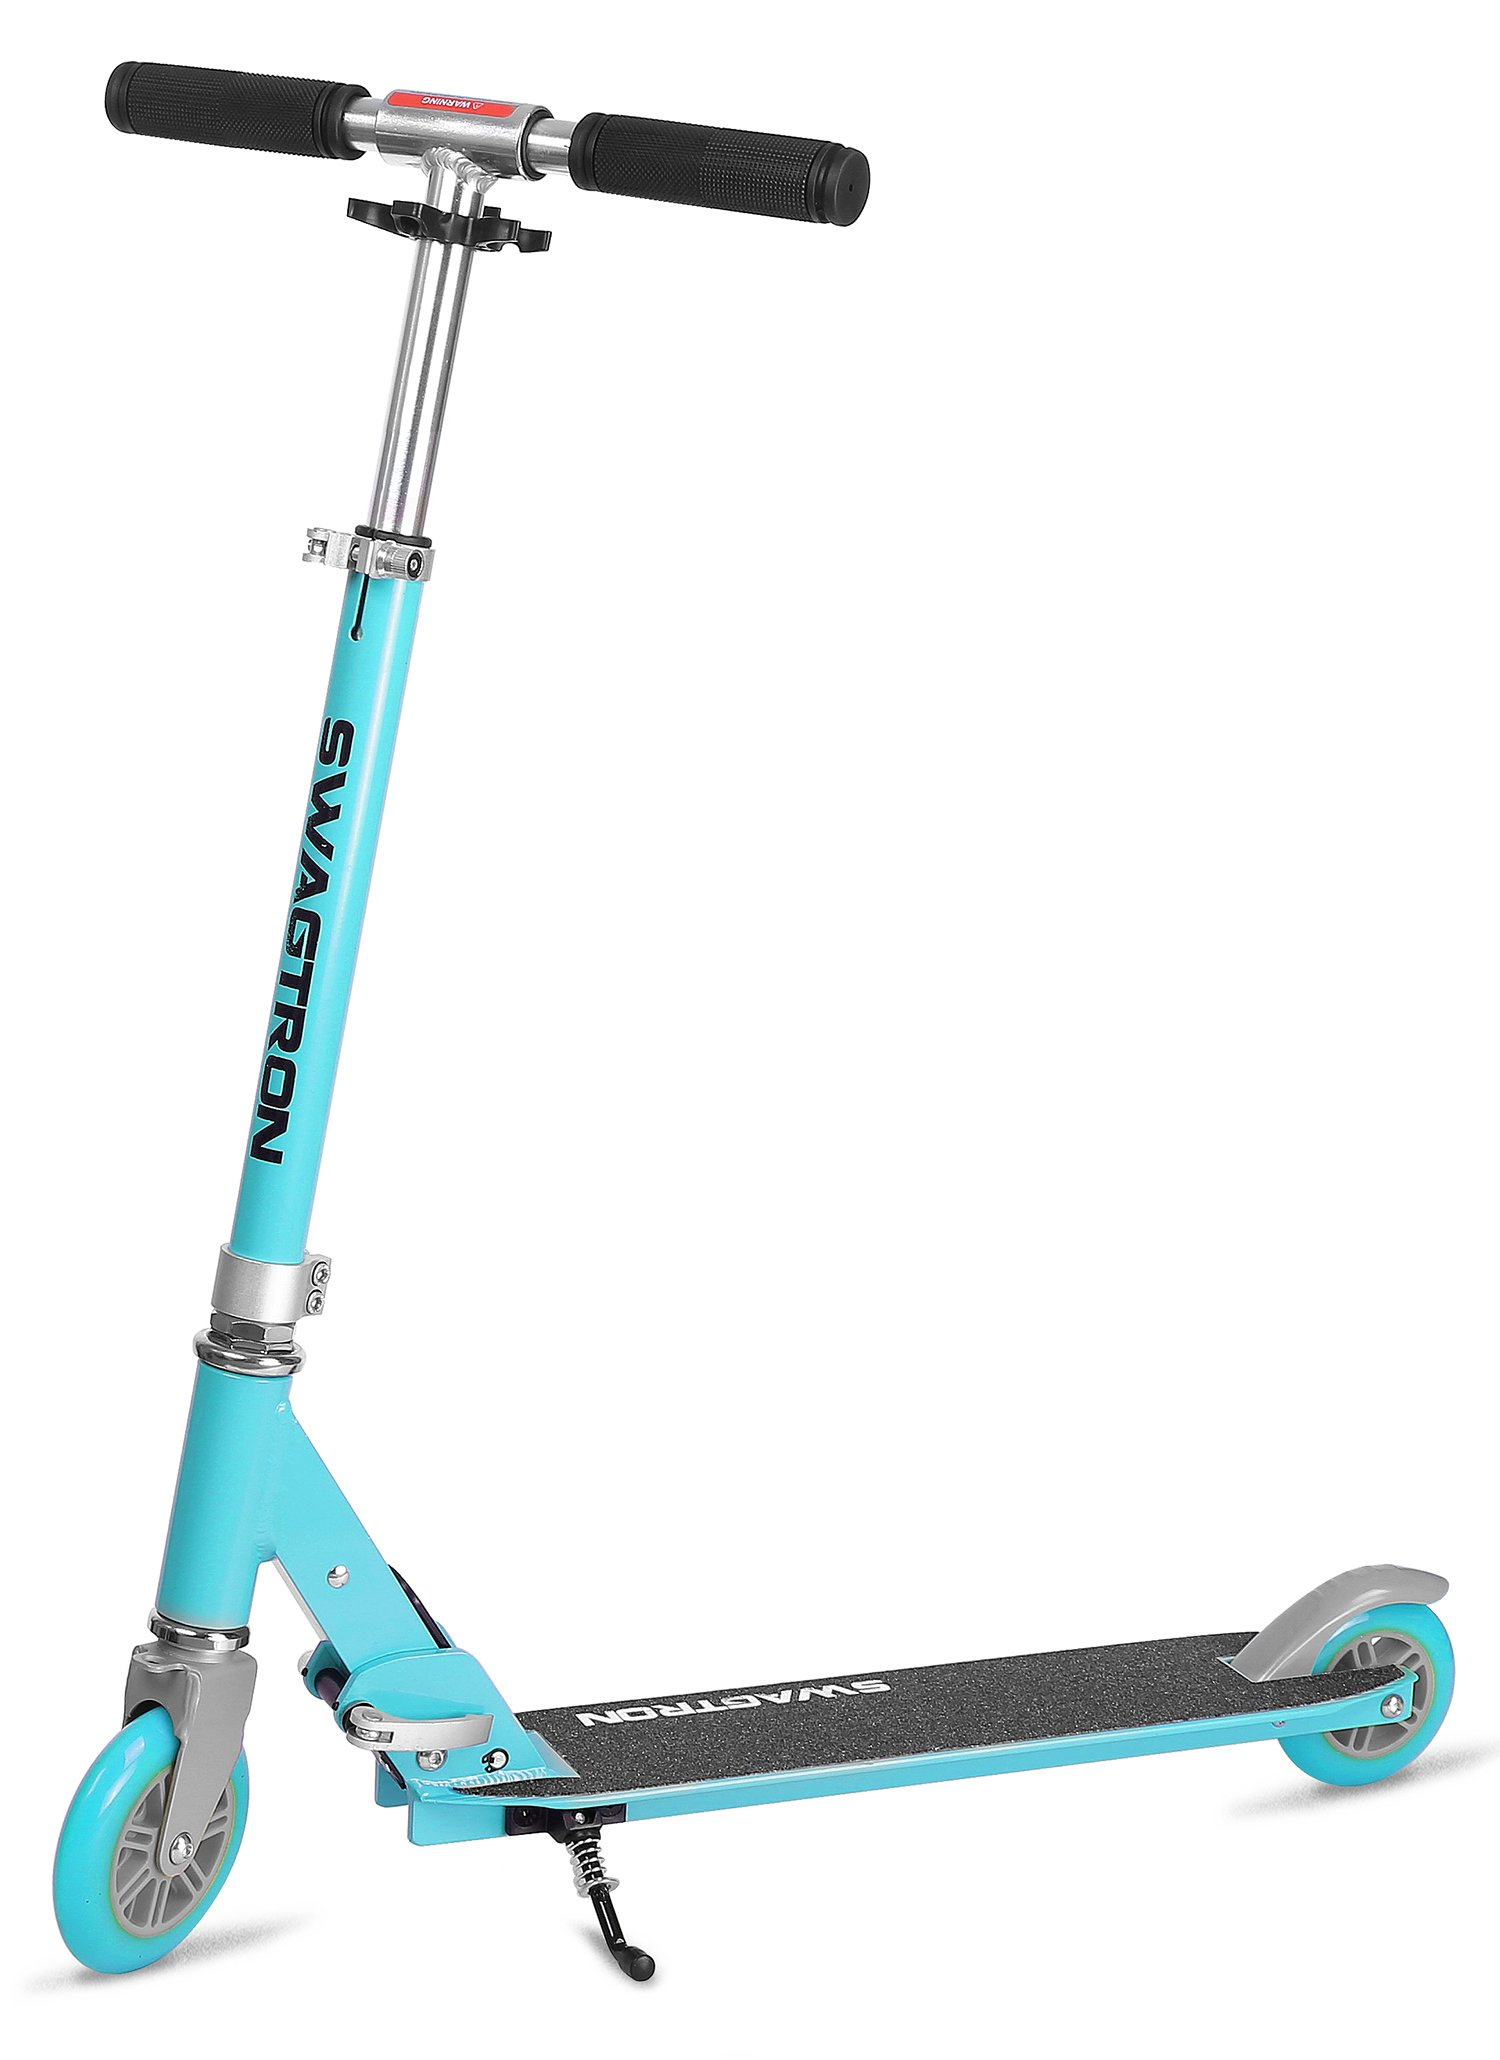 K1 Girl or Boy Kick Scooter 2 Wheel Adjustable 40'' Kids up to 72'' Teens, 220Lb Weight Limit, ABEC-9 Bearings, Lightweight 6.42Lbs, Next Gen Fold-n-Lock System + Kickstand (Blue/Silver) by Swagtron